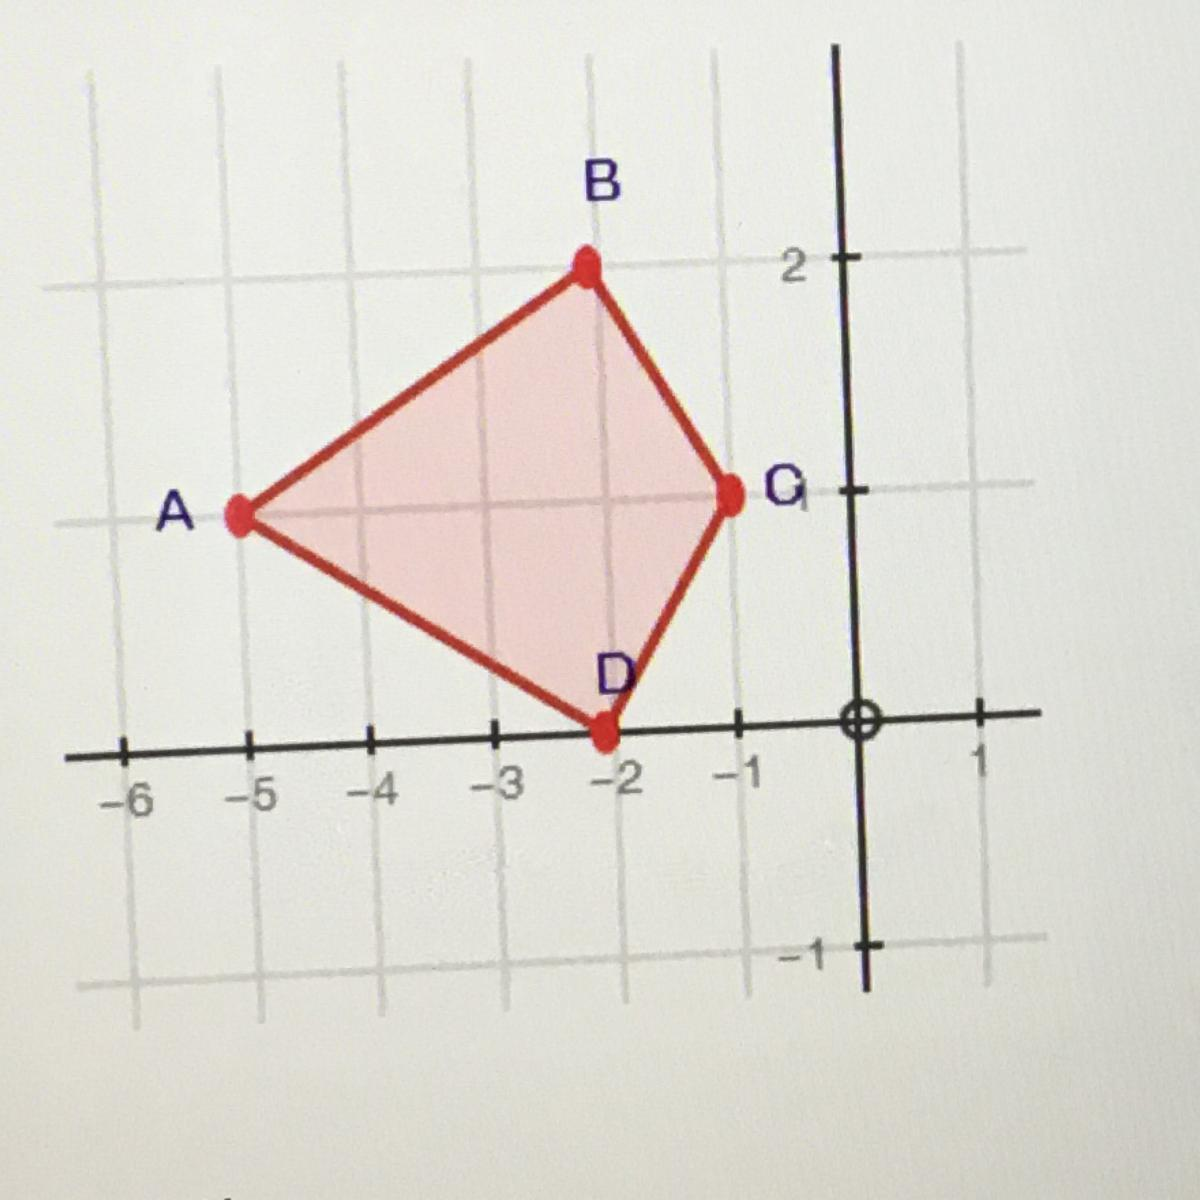 Kite Abcd Is Rotated 180 Clockwise About The Origin And